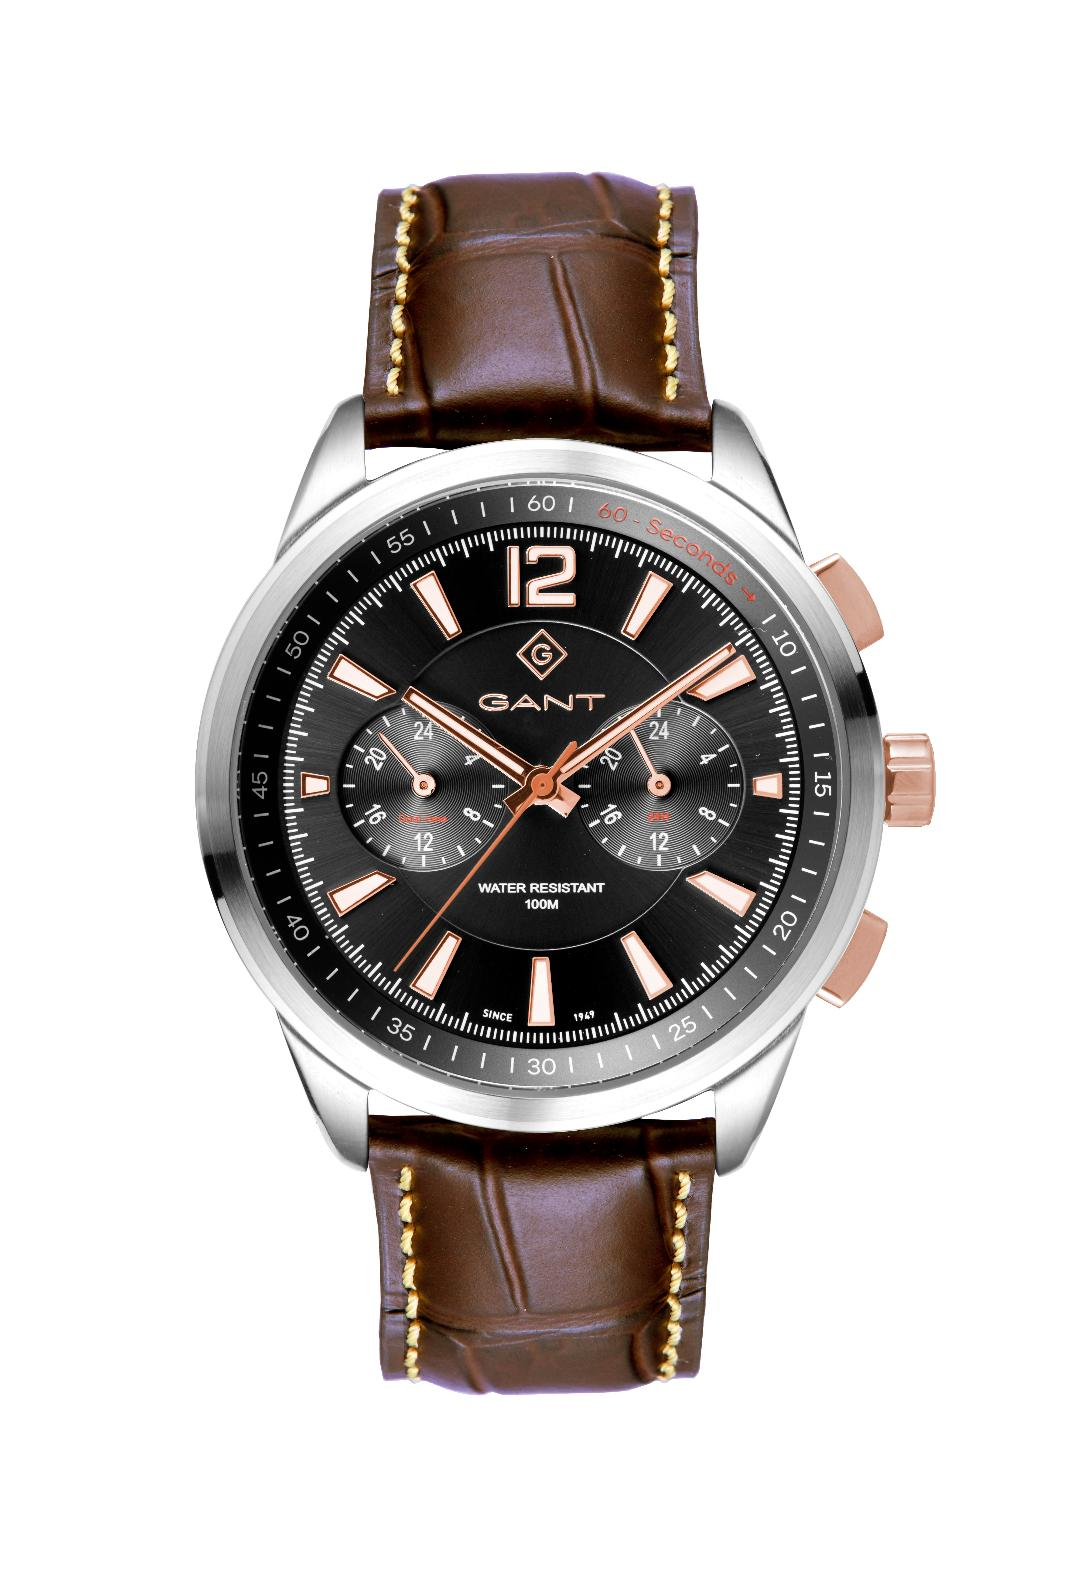 Ανδρικό Ρολόι GANT Walworth Dual Time Multifunction Silver Stainless Steel Leather Strap.